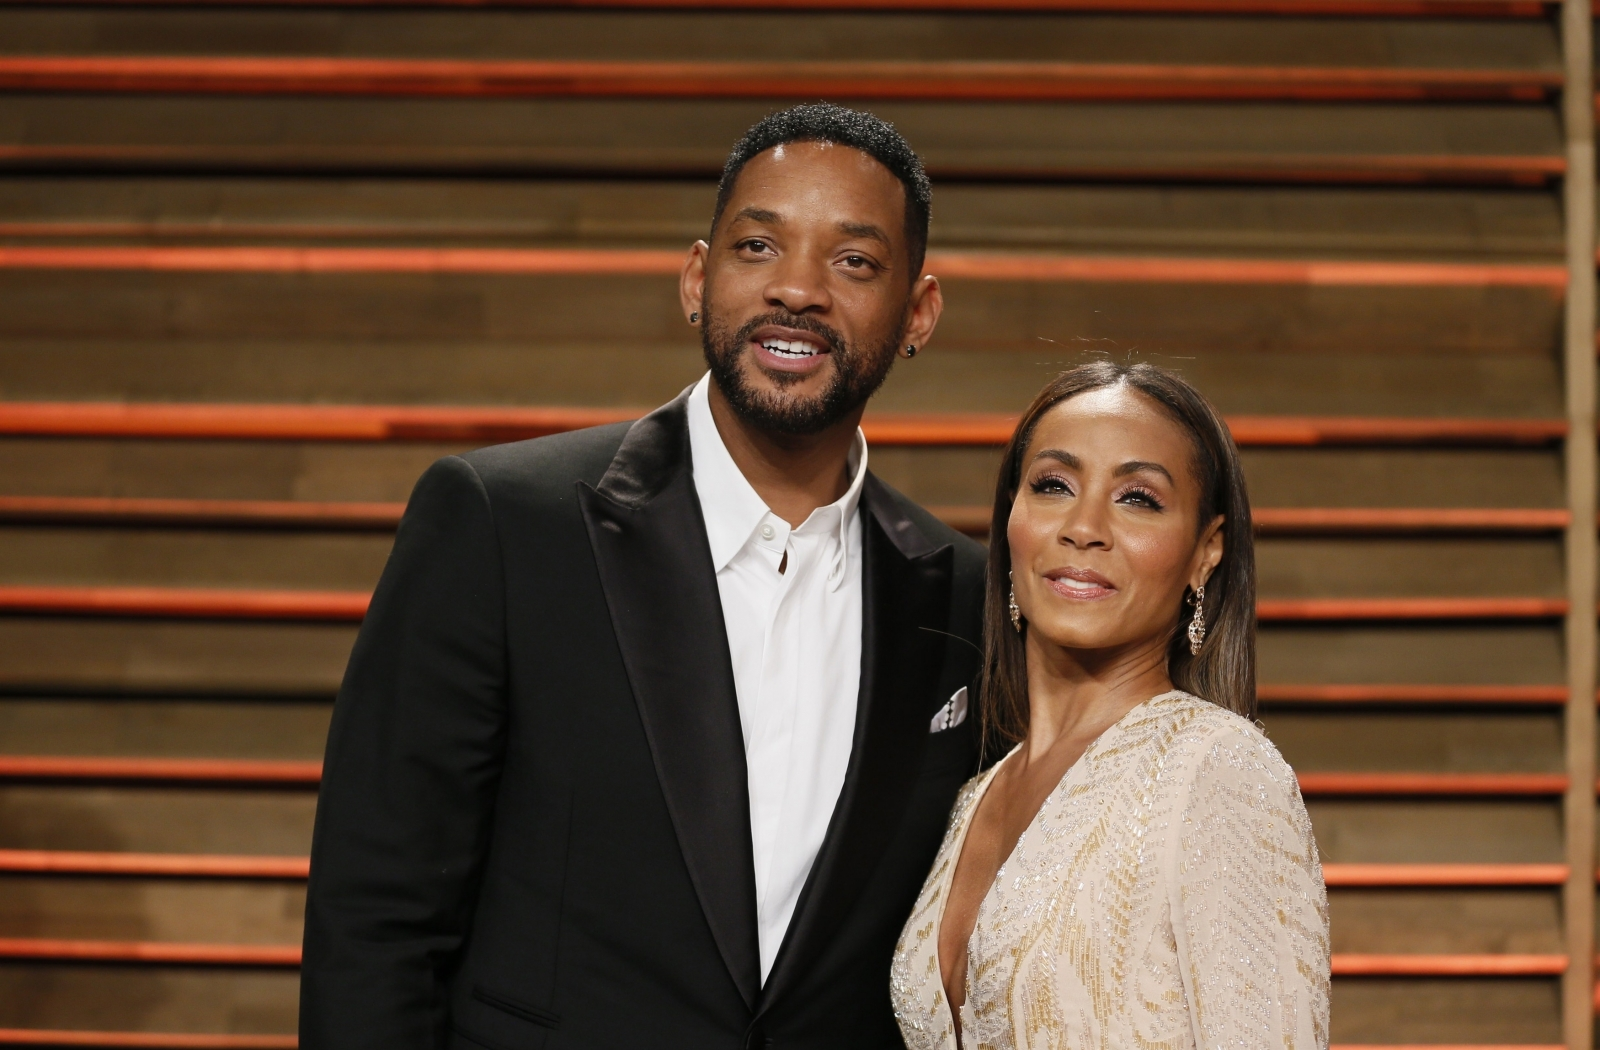 Will Smith's heartwarming tribute to 'Queen' Jada Pinkett Smith on 20th anniversary